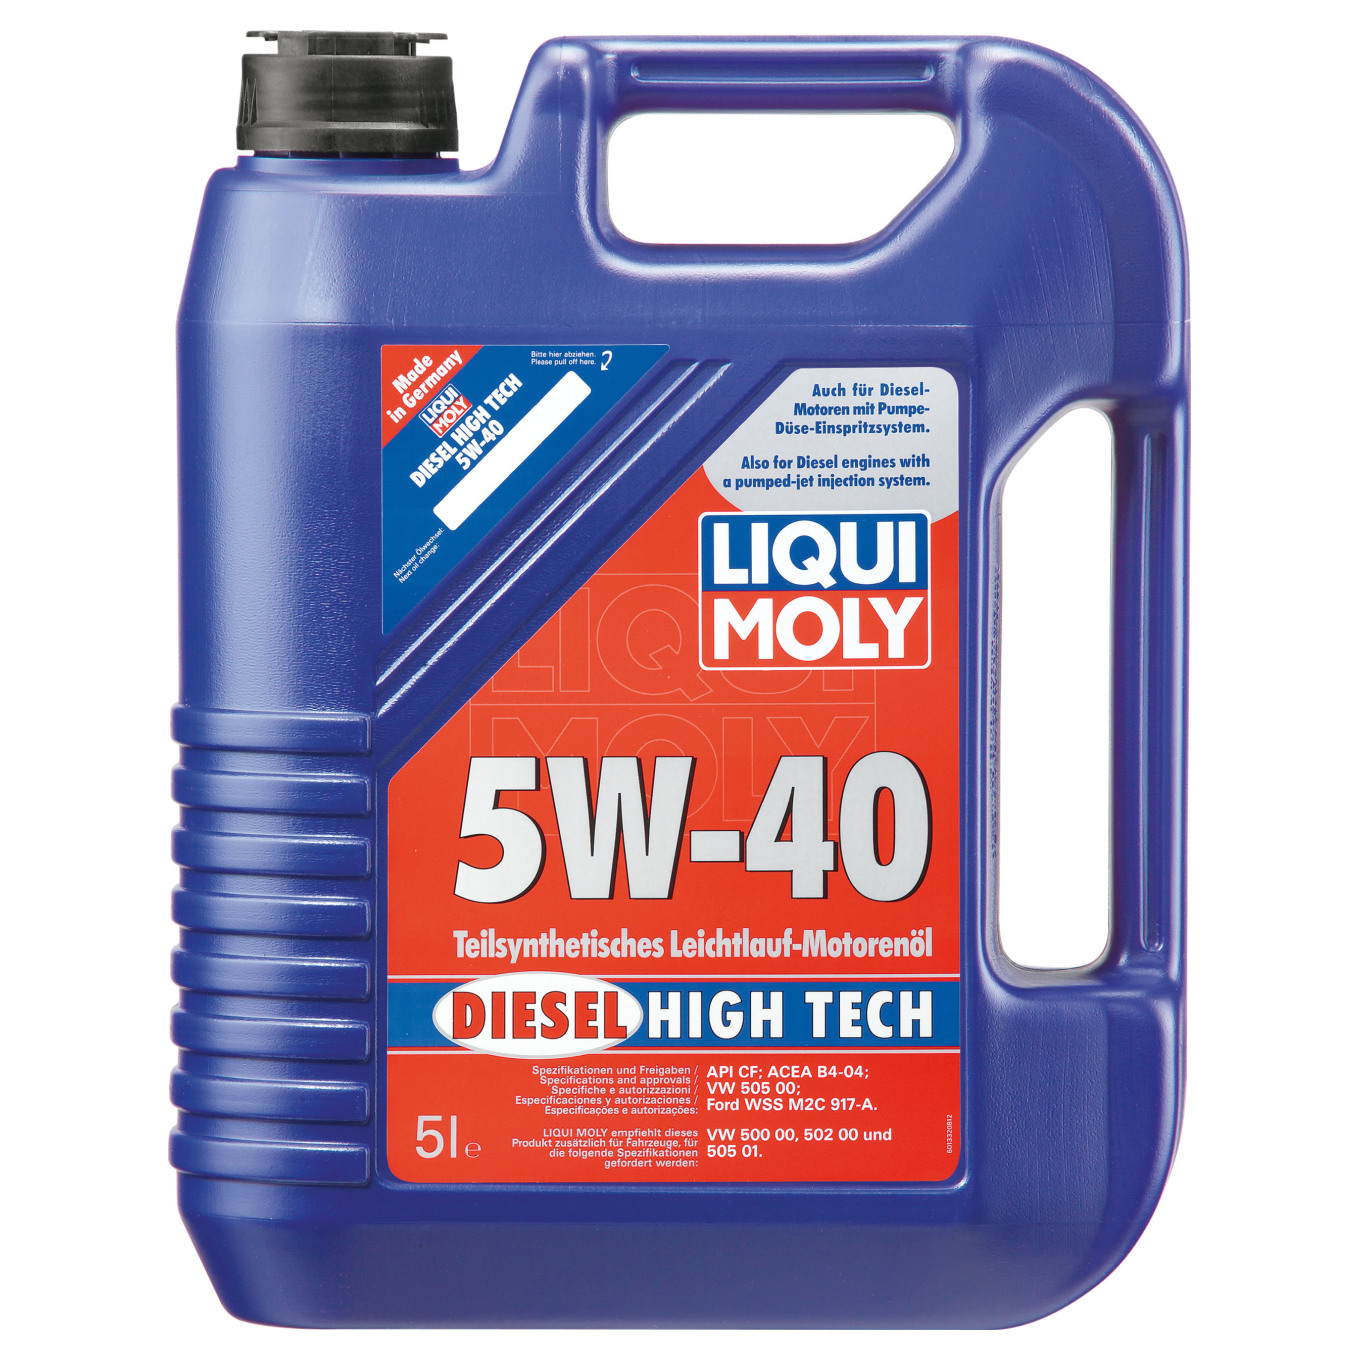 liqui moly diesel high tech 5w 40 5 l preisvergleich. Black Bedroom Furniture Sets. Home Design Ideas